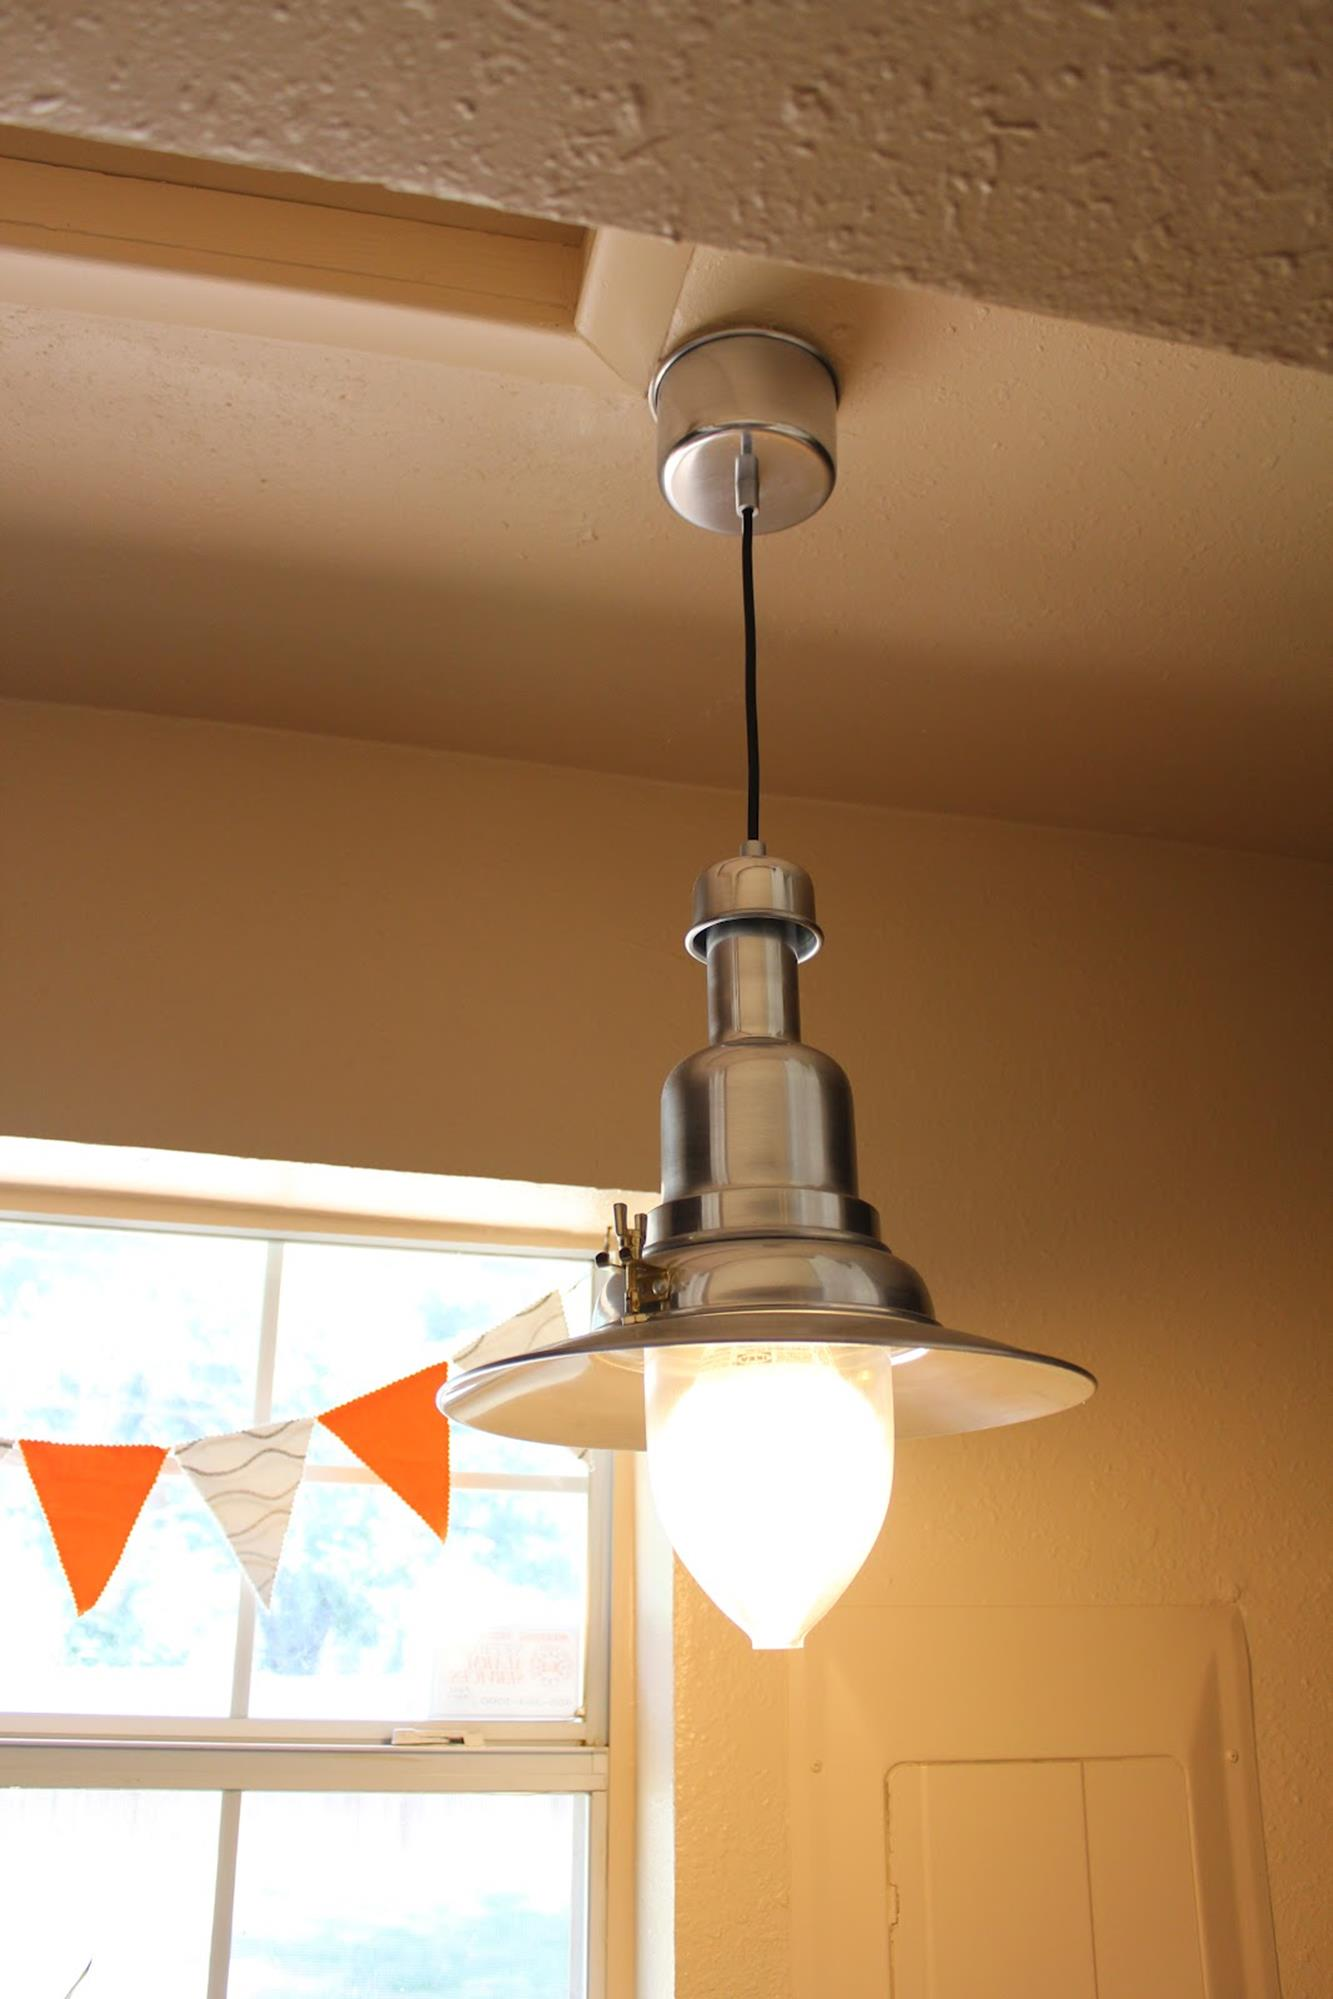 Light Fixtures Ideas For Laundry Room 14